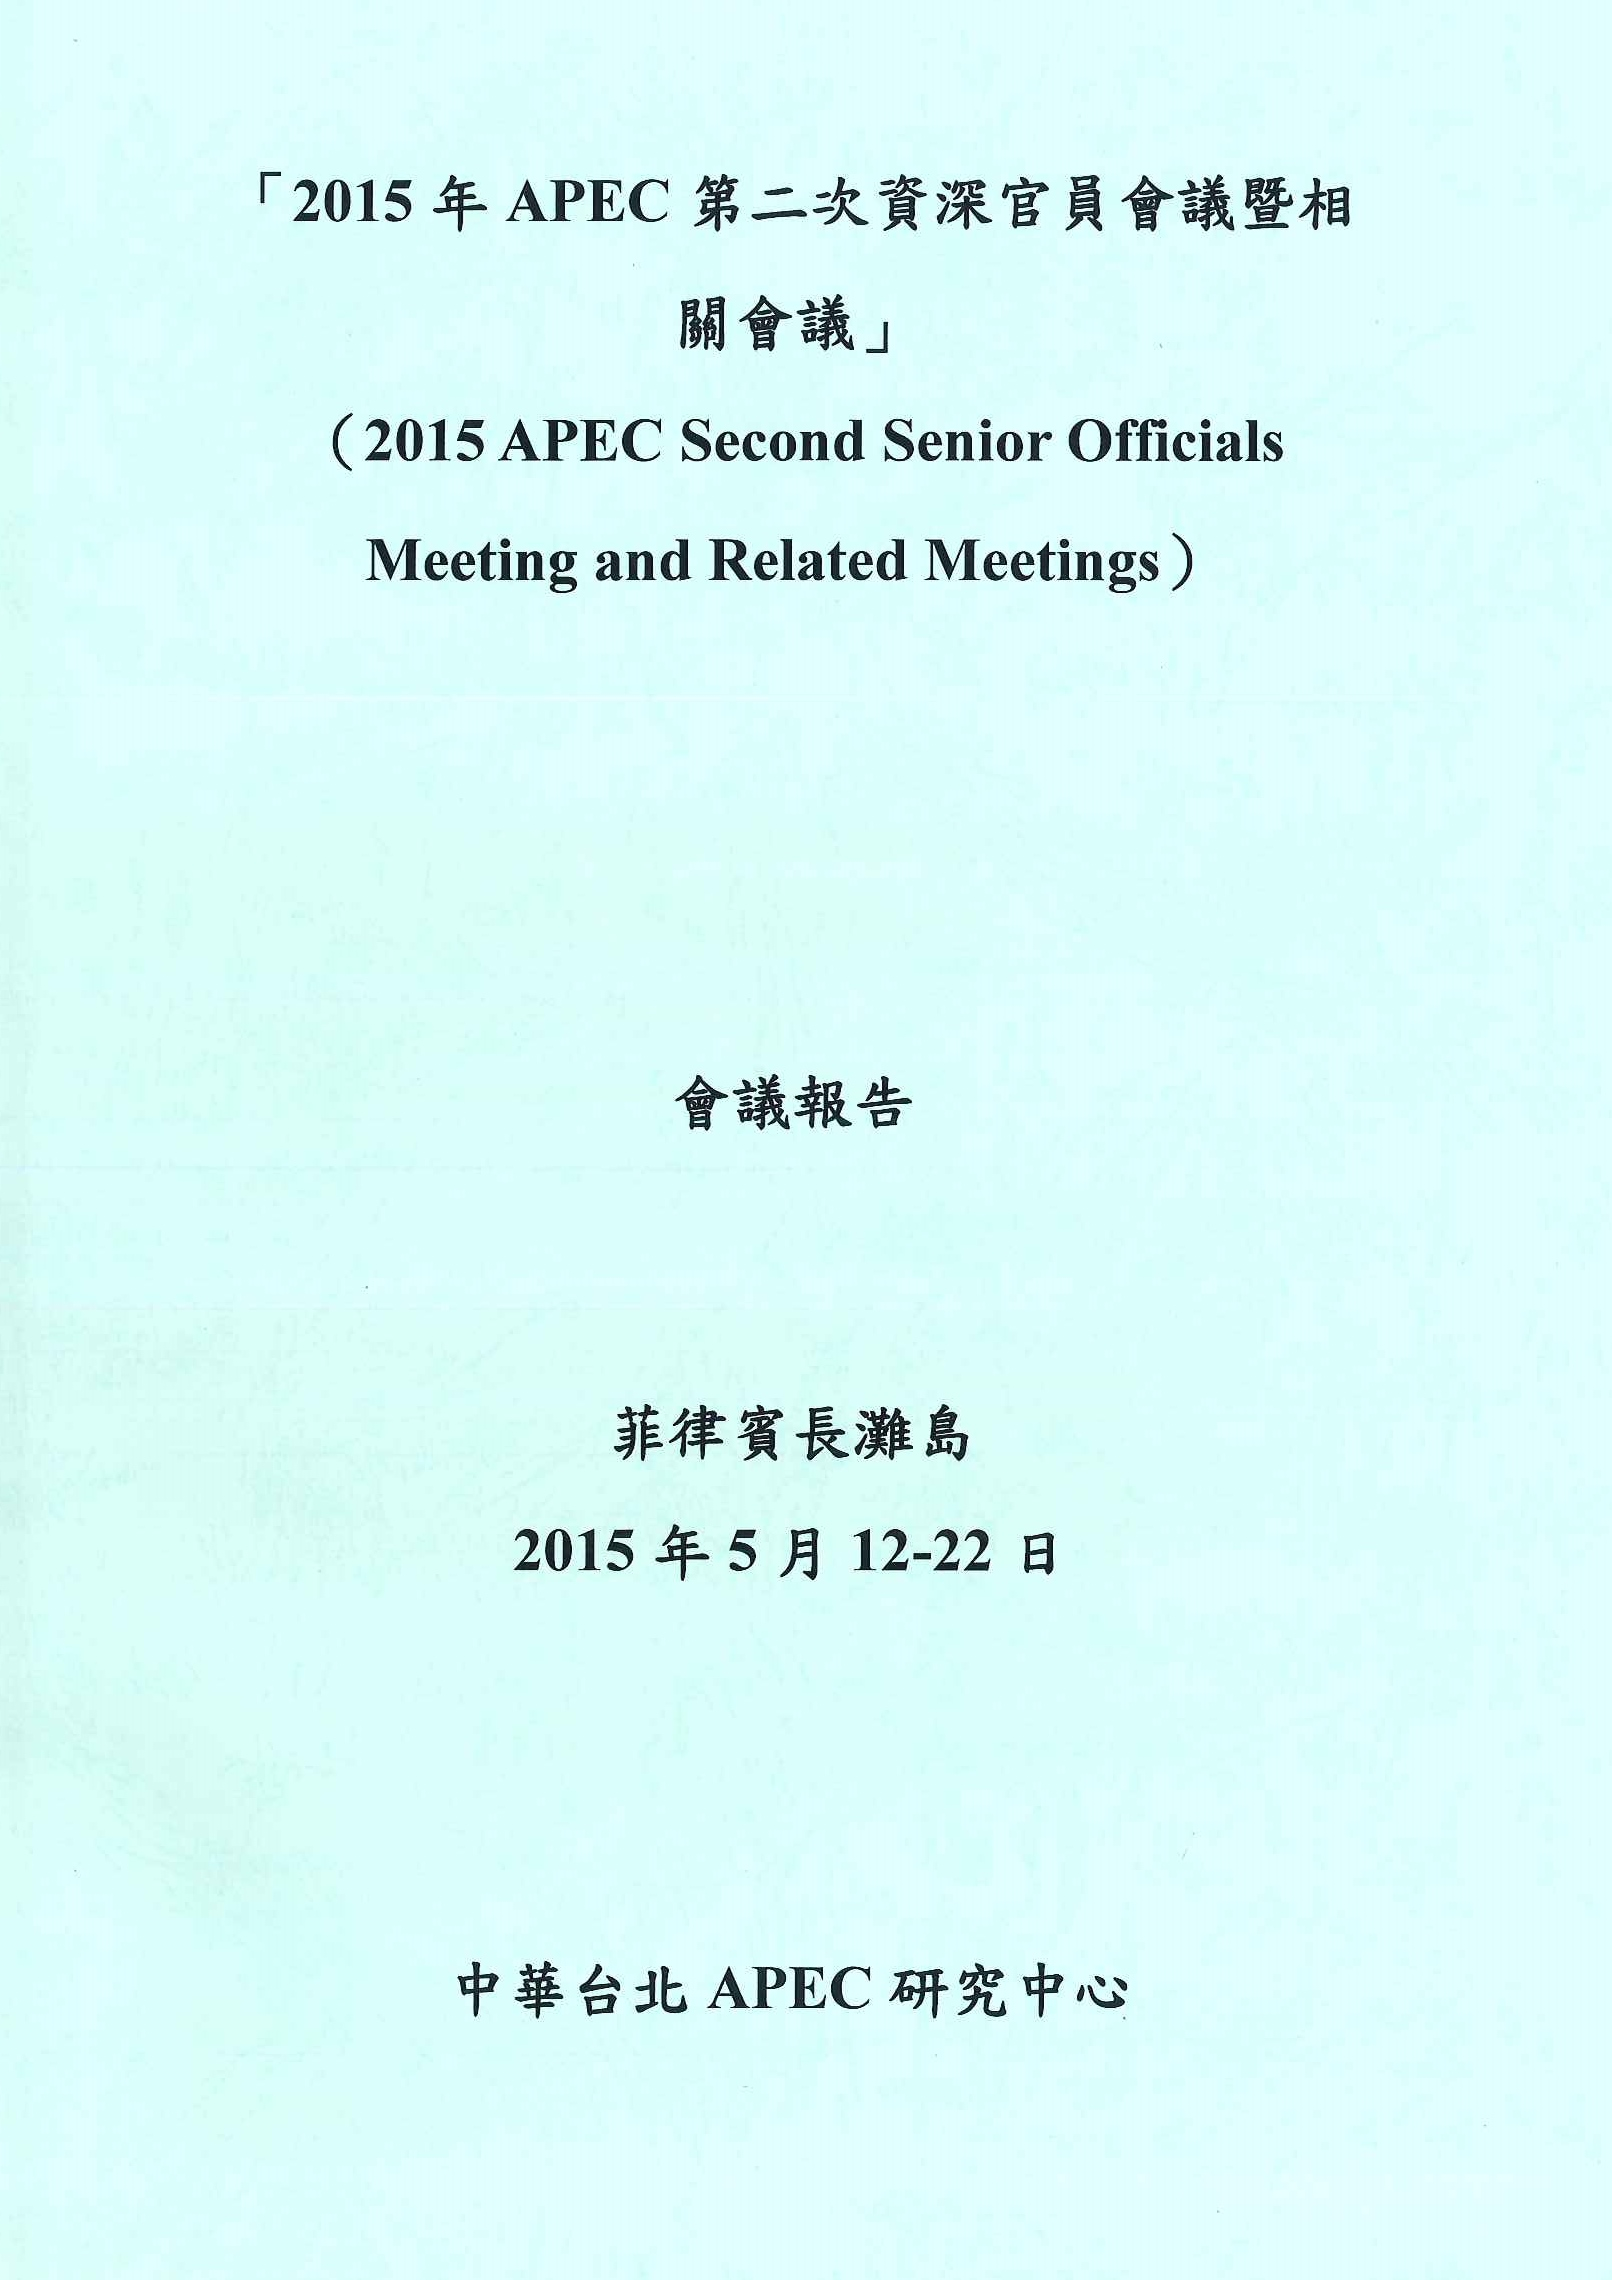 2015年APEC第二次資深官員會議暨相關會議會議報告=2015 APEC second senior officials meeting and related meetings